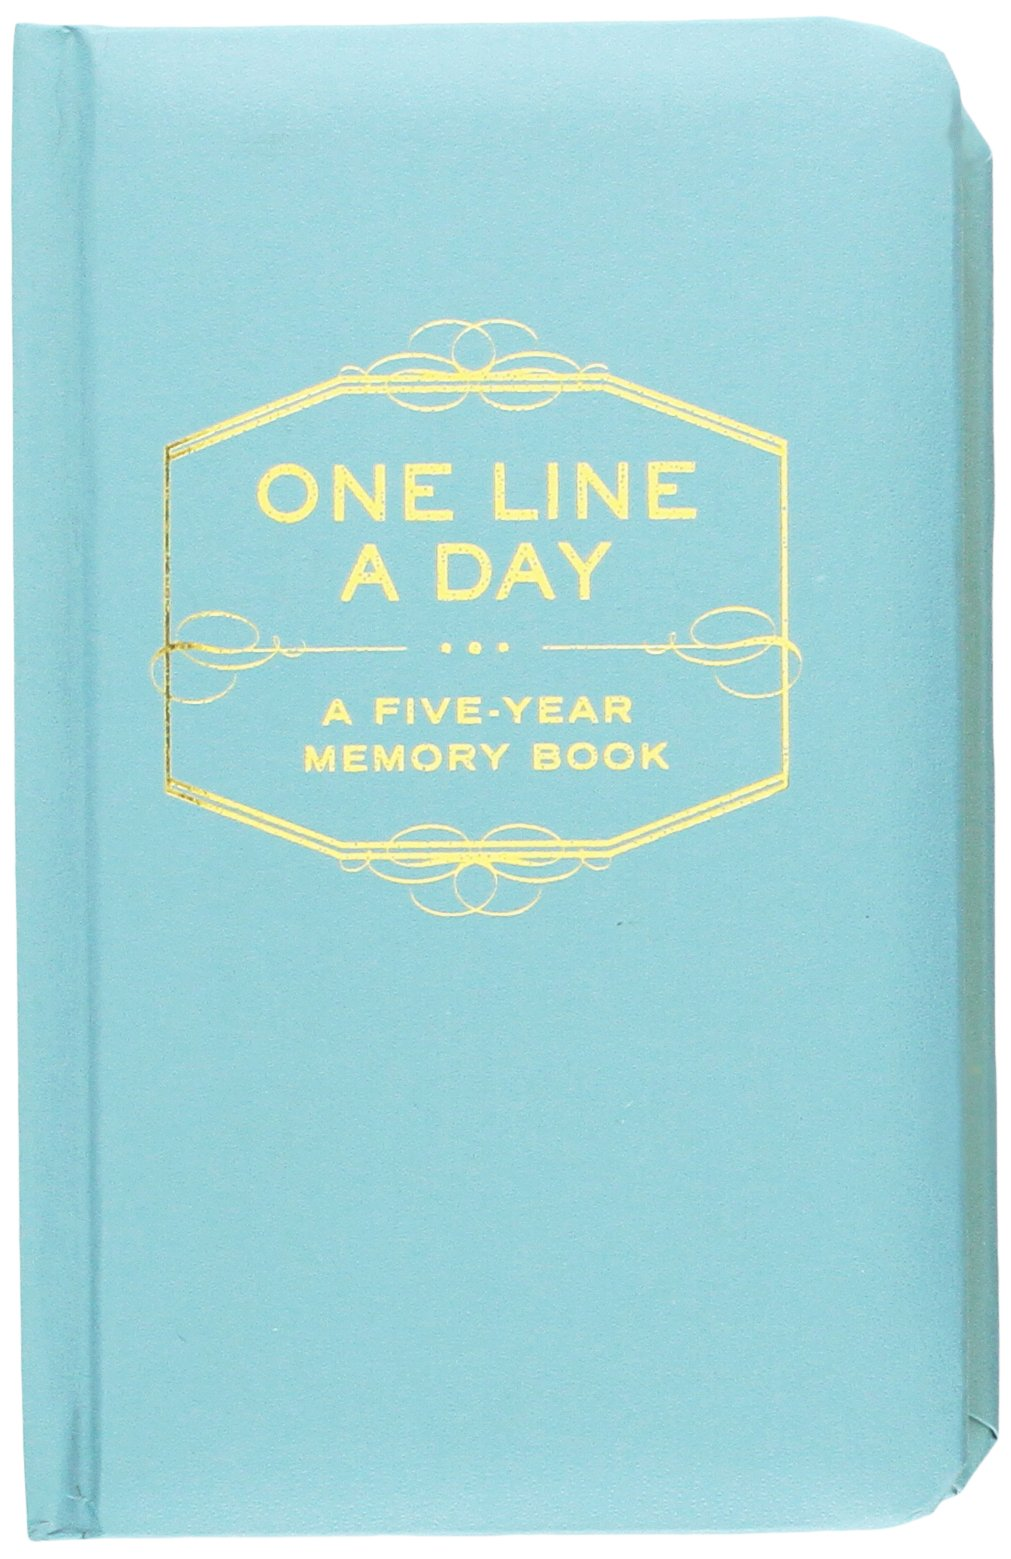 one line a day a five year memory book chronicle books staff one line a day a five year memory book chronicle books staff 9780811870191 amazon com books